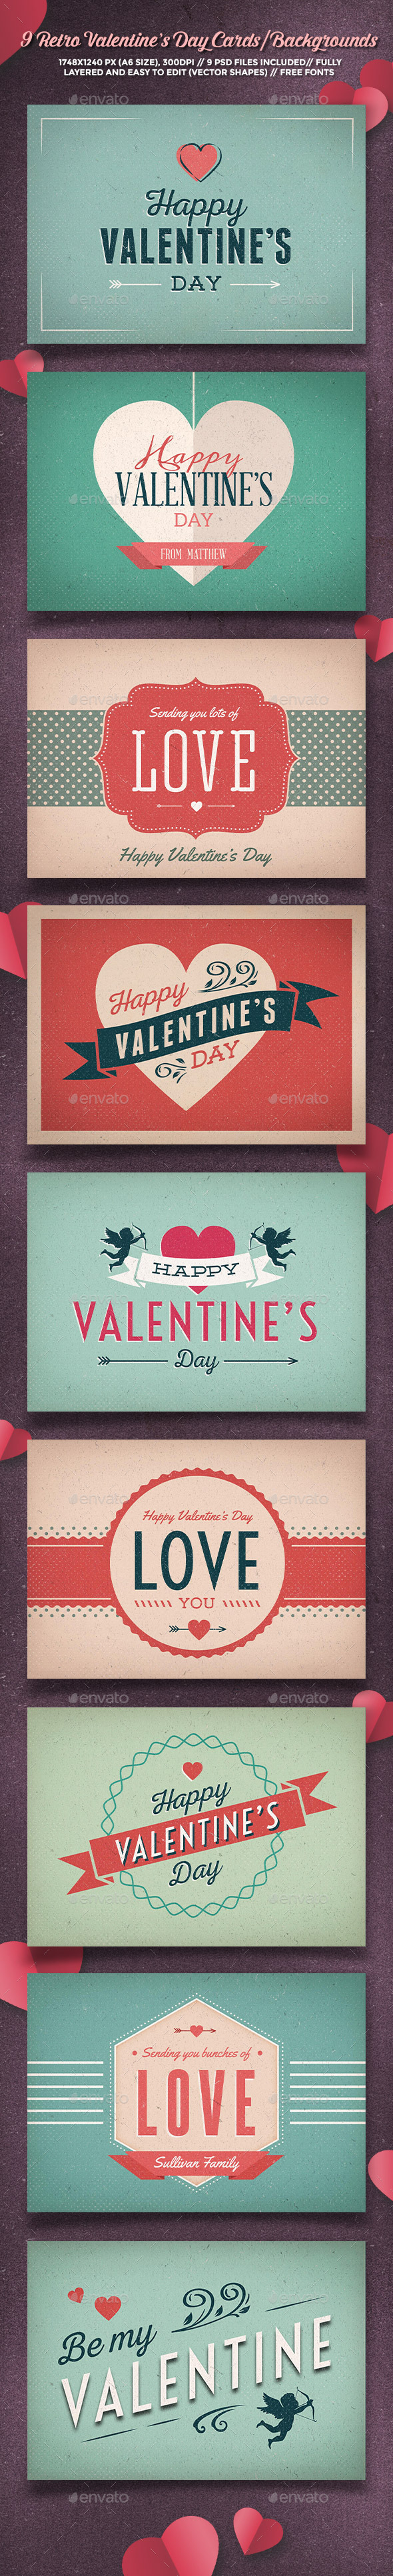 GraphicRiver 9 Retro Valentine's Day Cards Backgrounds 10012586